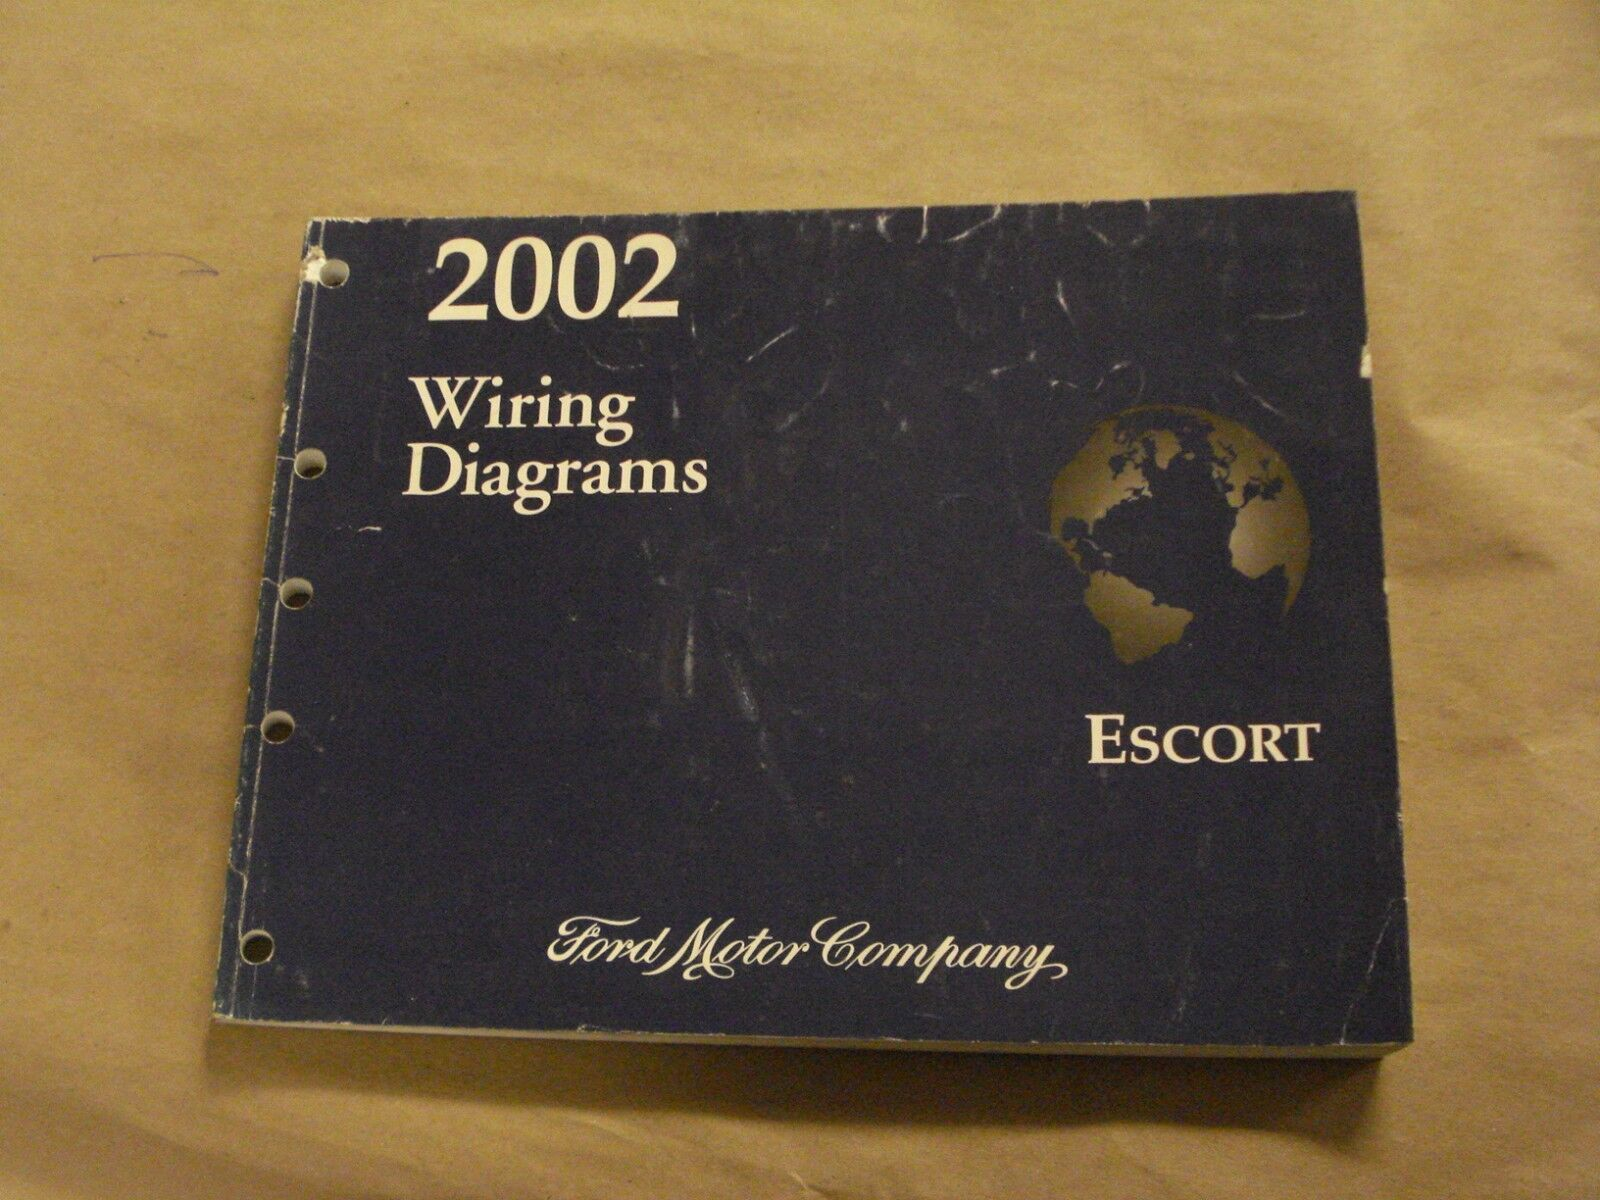 Wiring Diagram 2002 Ford Motor Company House Symbols 1990 Escort Workshop Service Manual Diagrams Book Oem Rh Picclick Com E 350 Truck